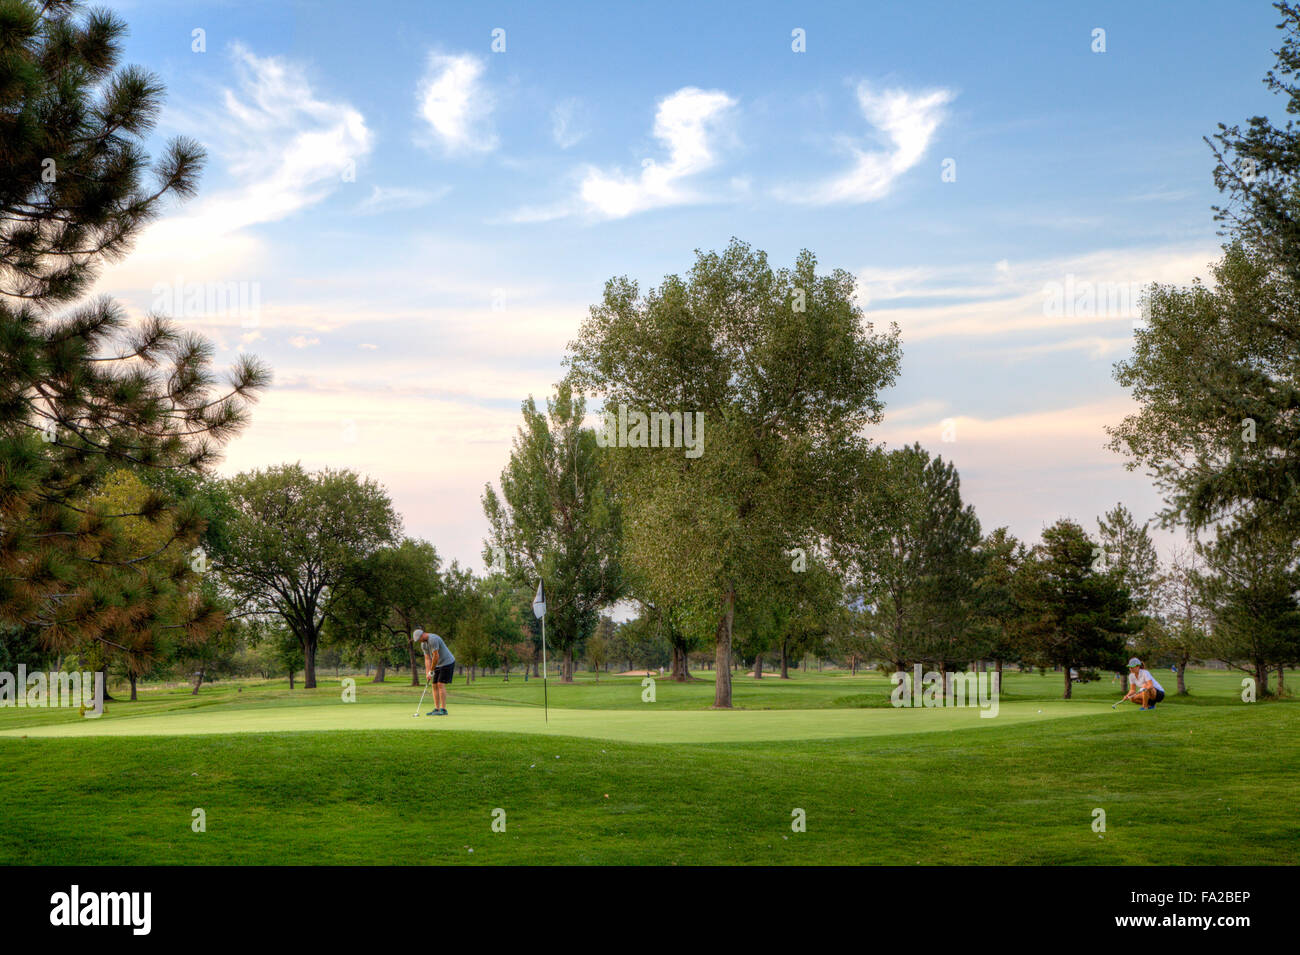 Two golfers playing on a golf green. - Stock Image